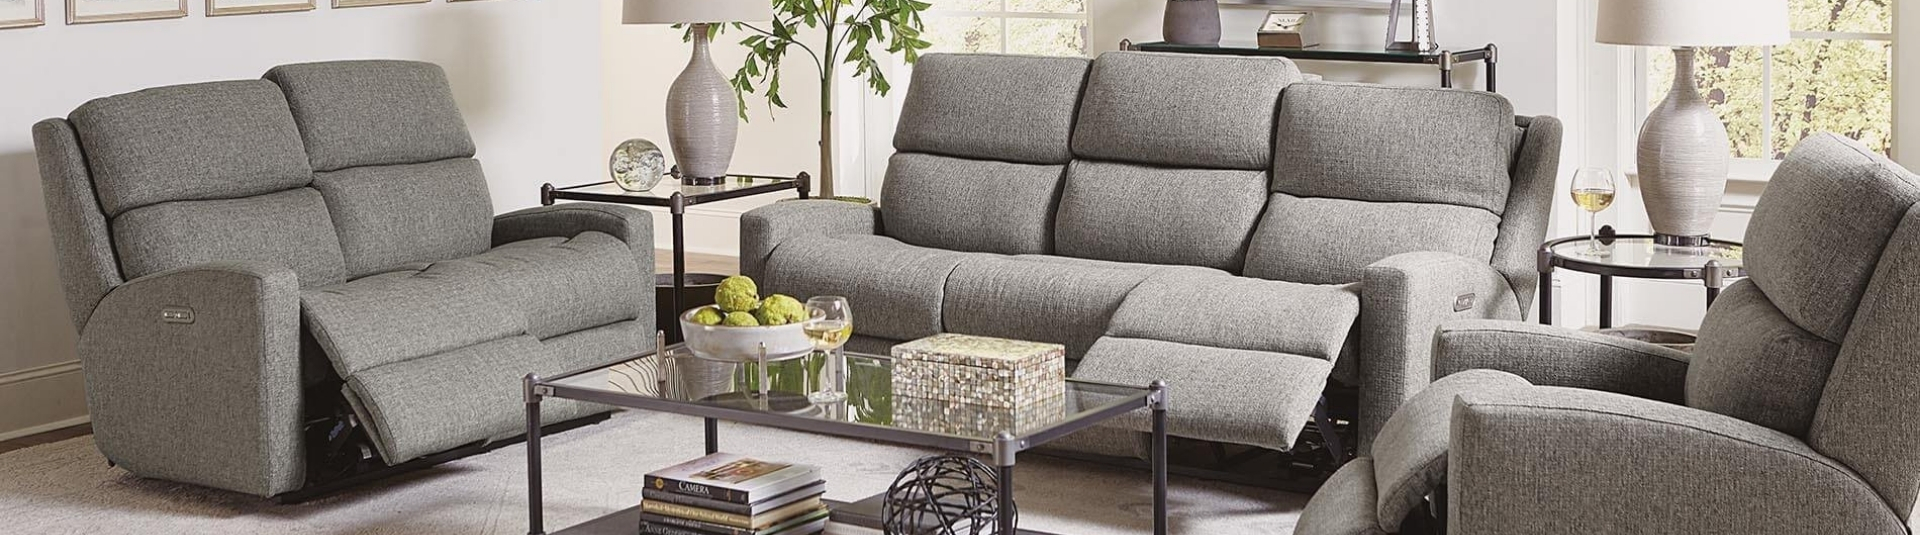 Recliners and Power-lift Chairs